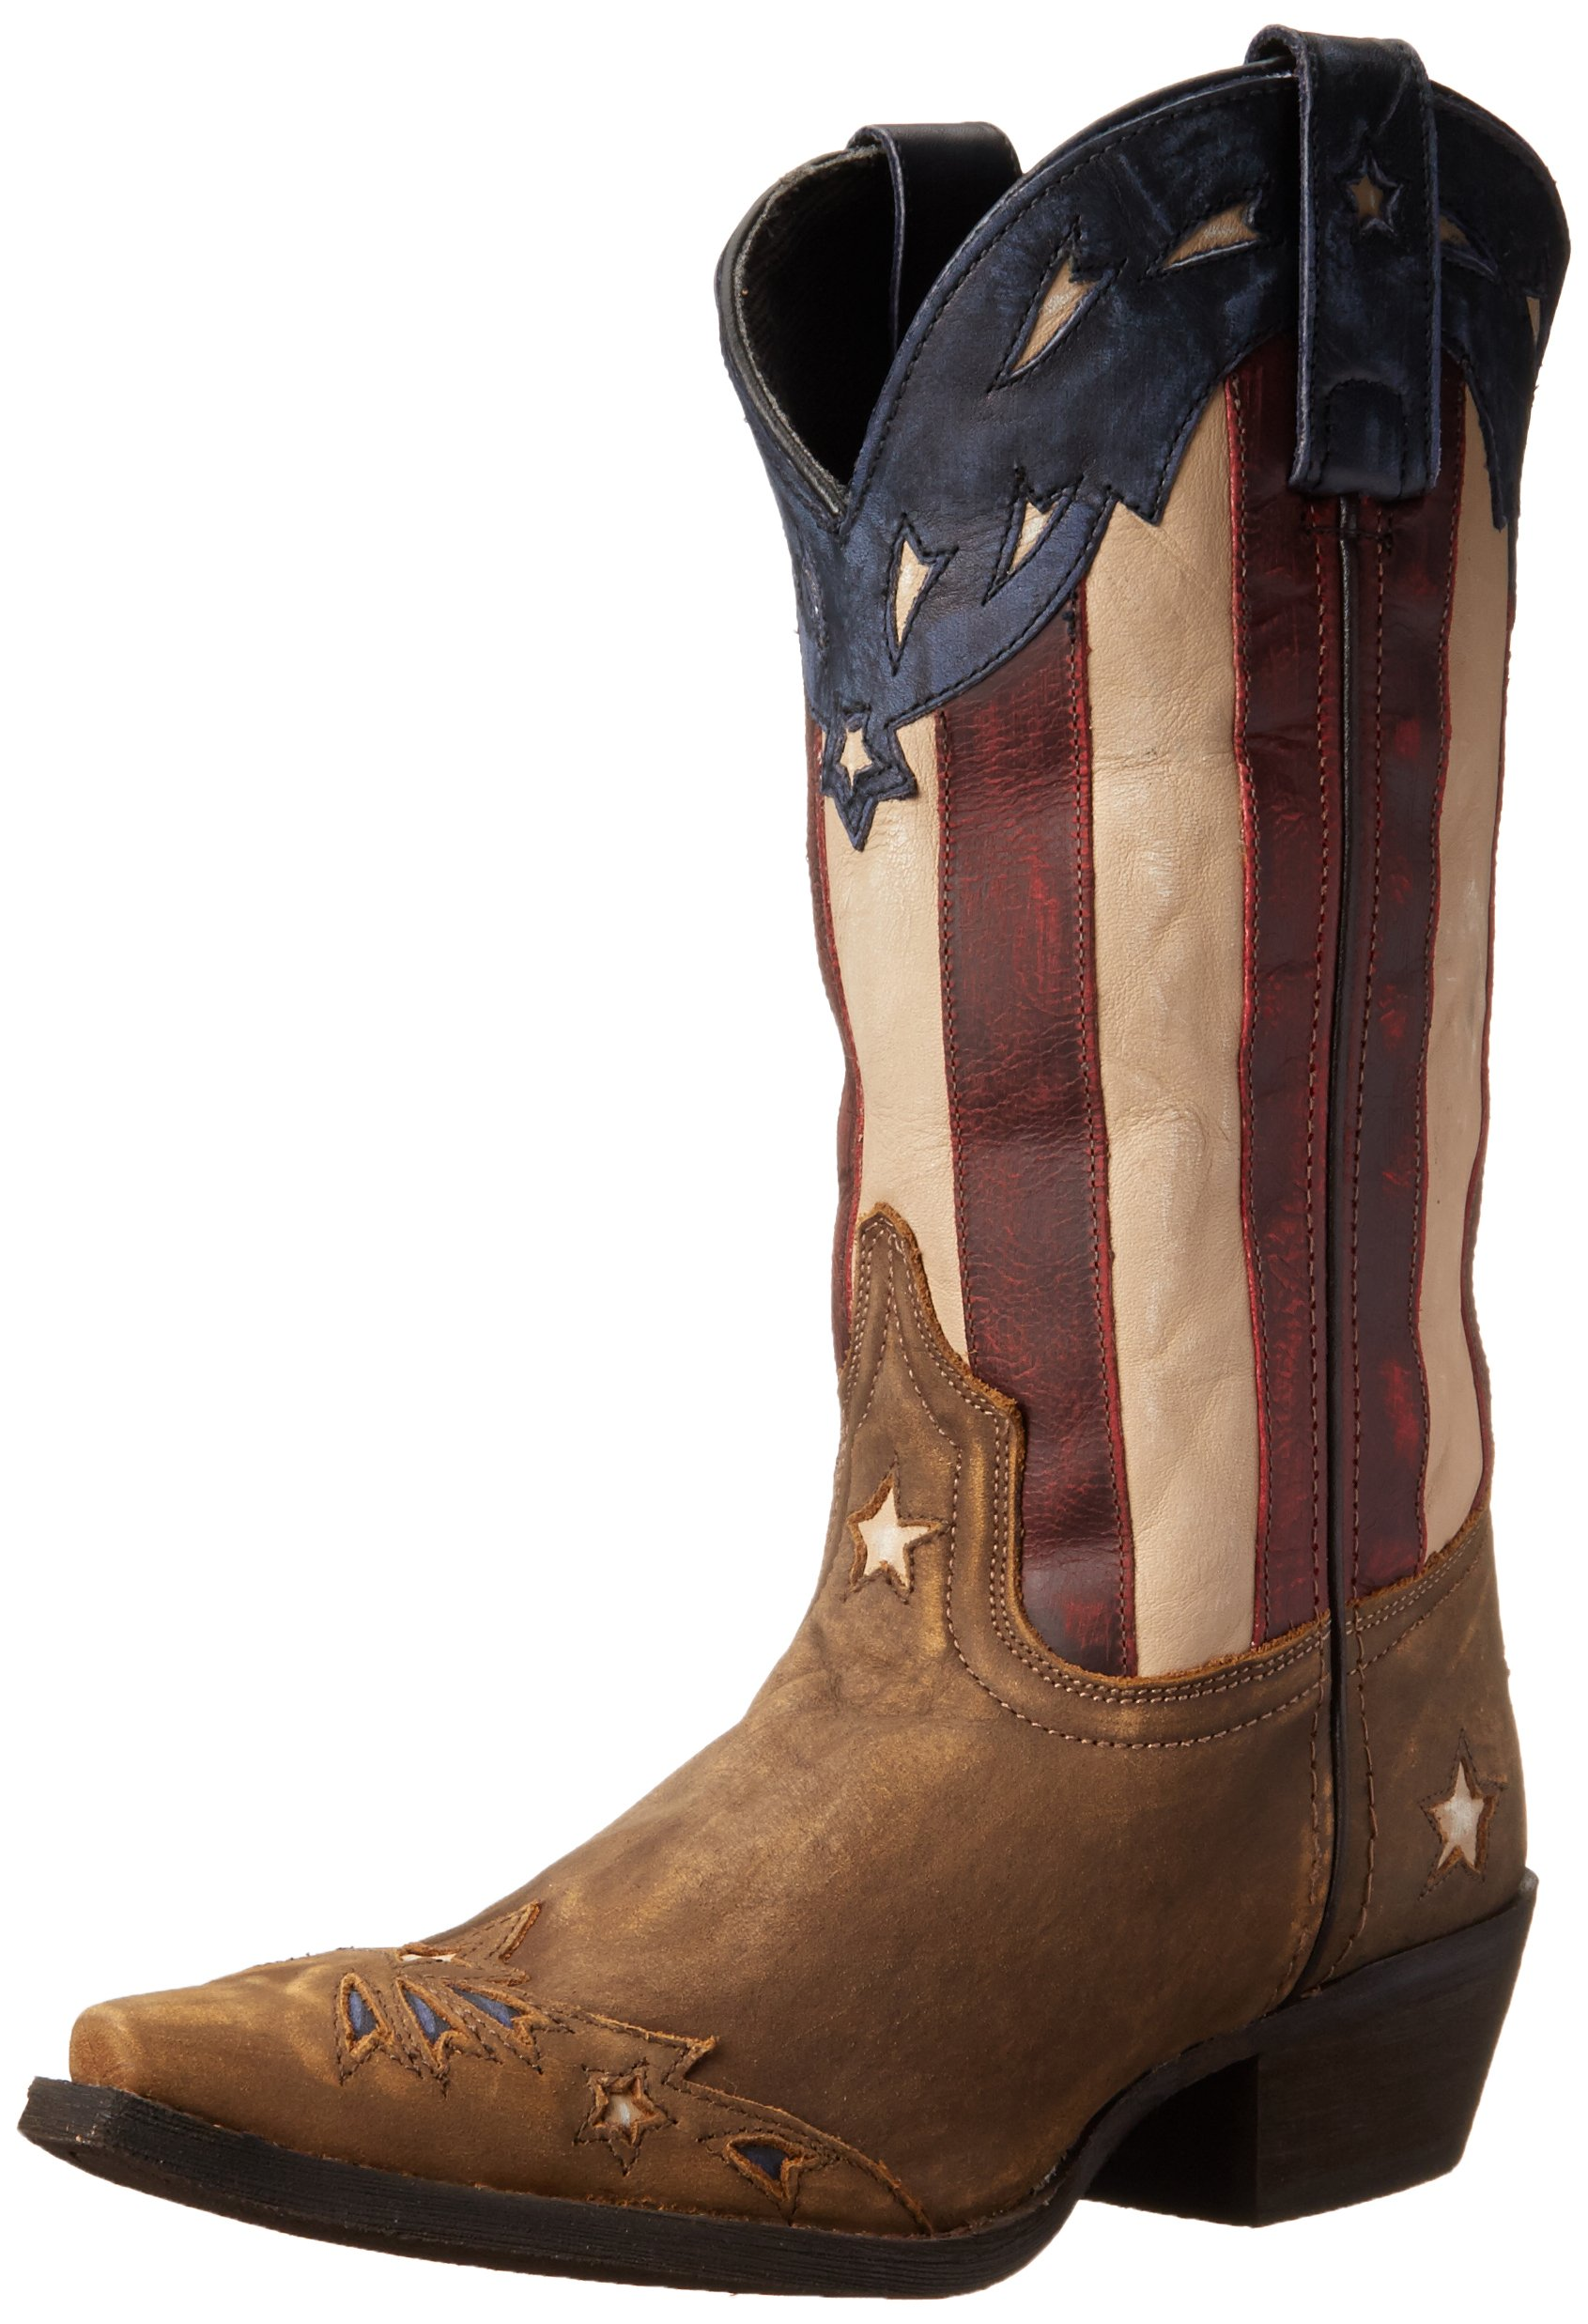 Laredo Women's Keyes Western Boot, Tan/Multi, 8 M US